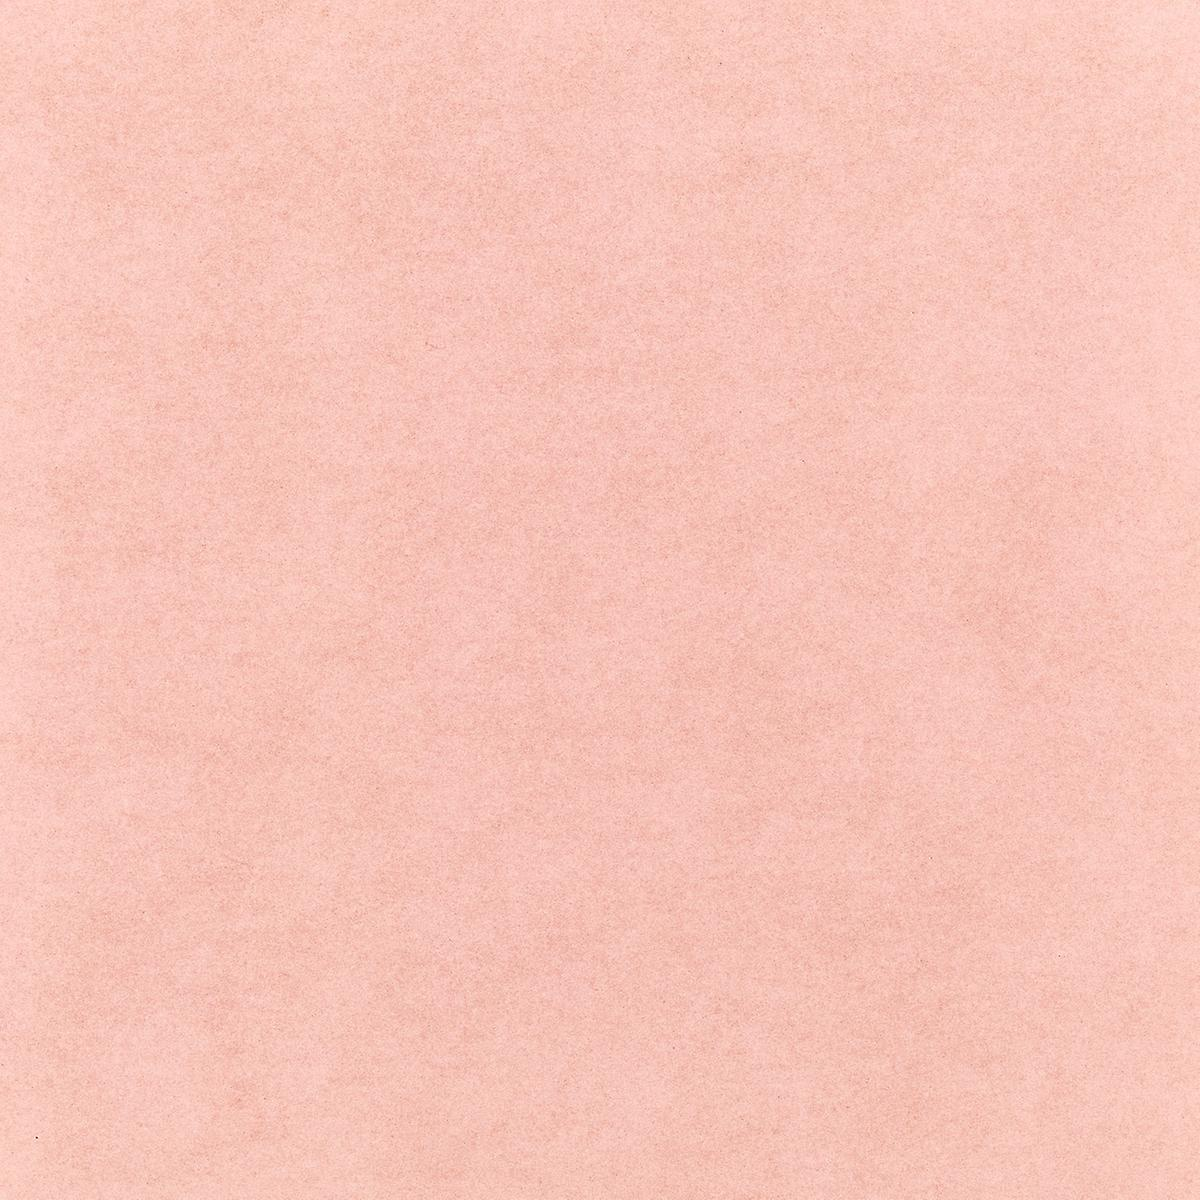 Pearlized Pink Wrapping Paper